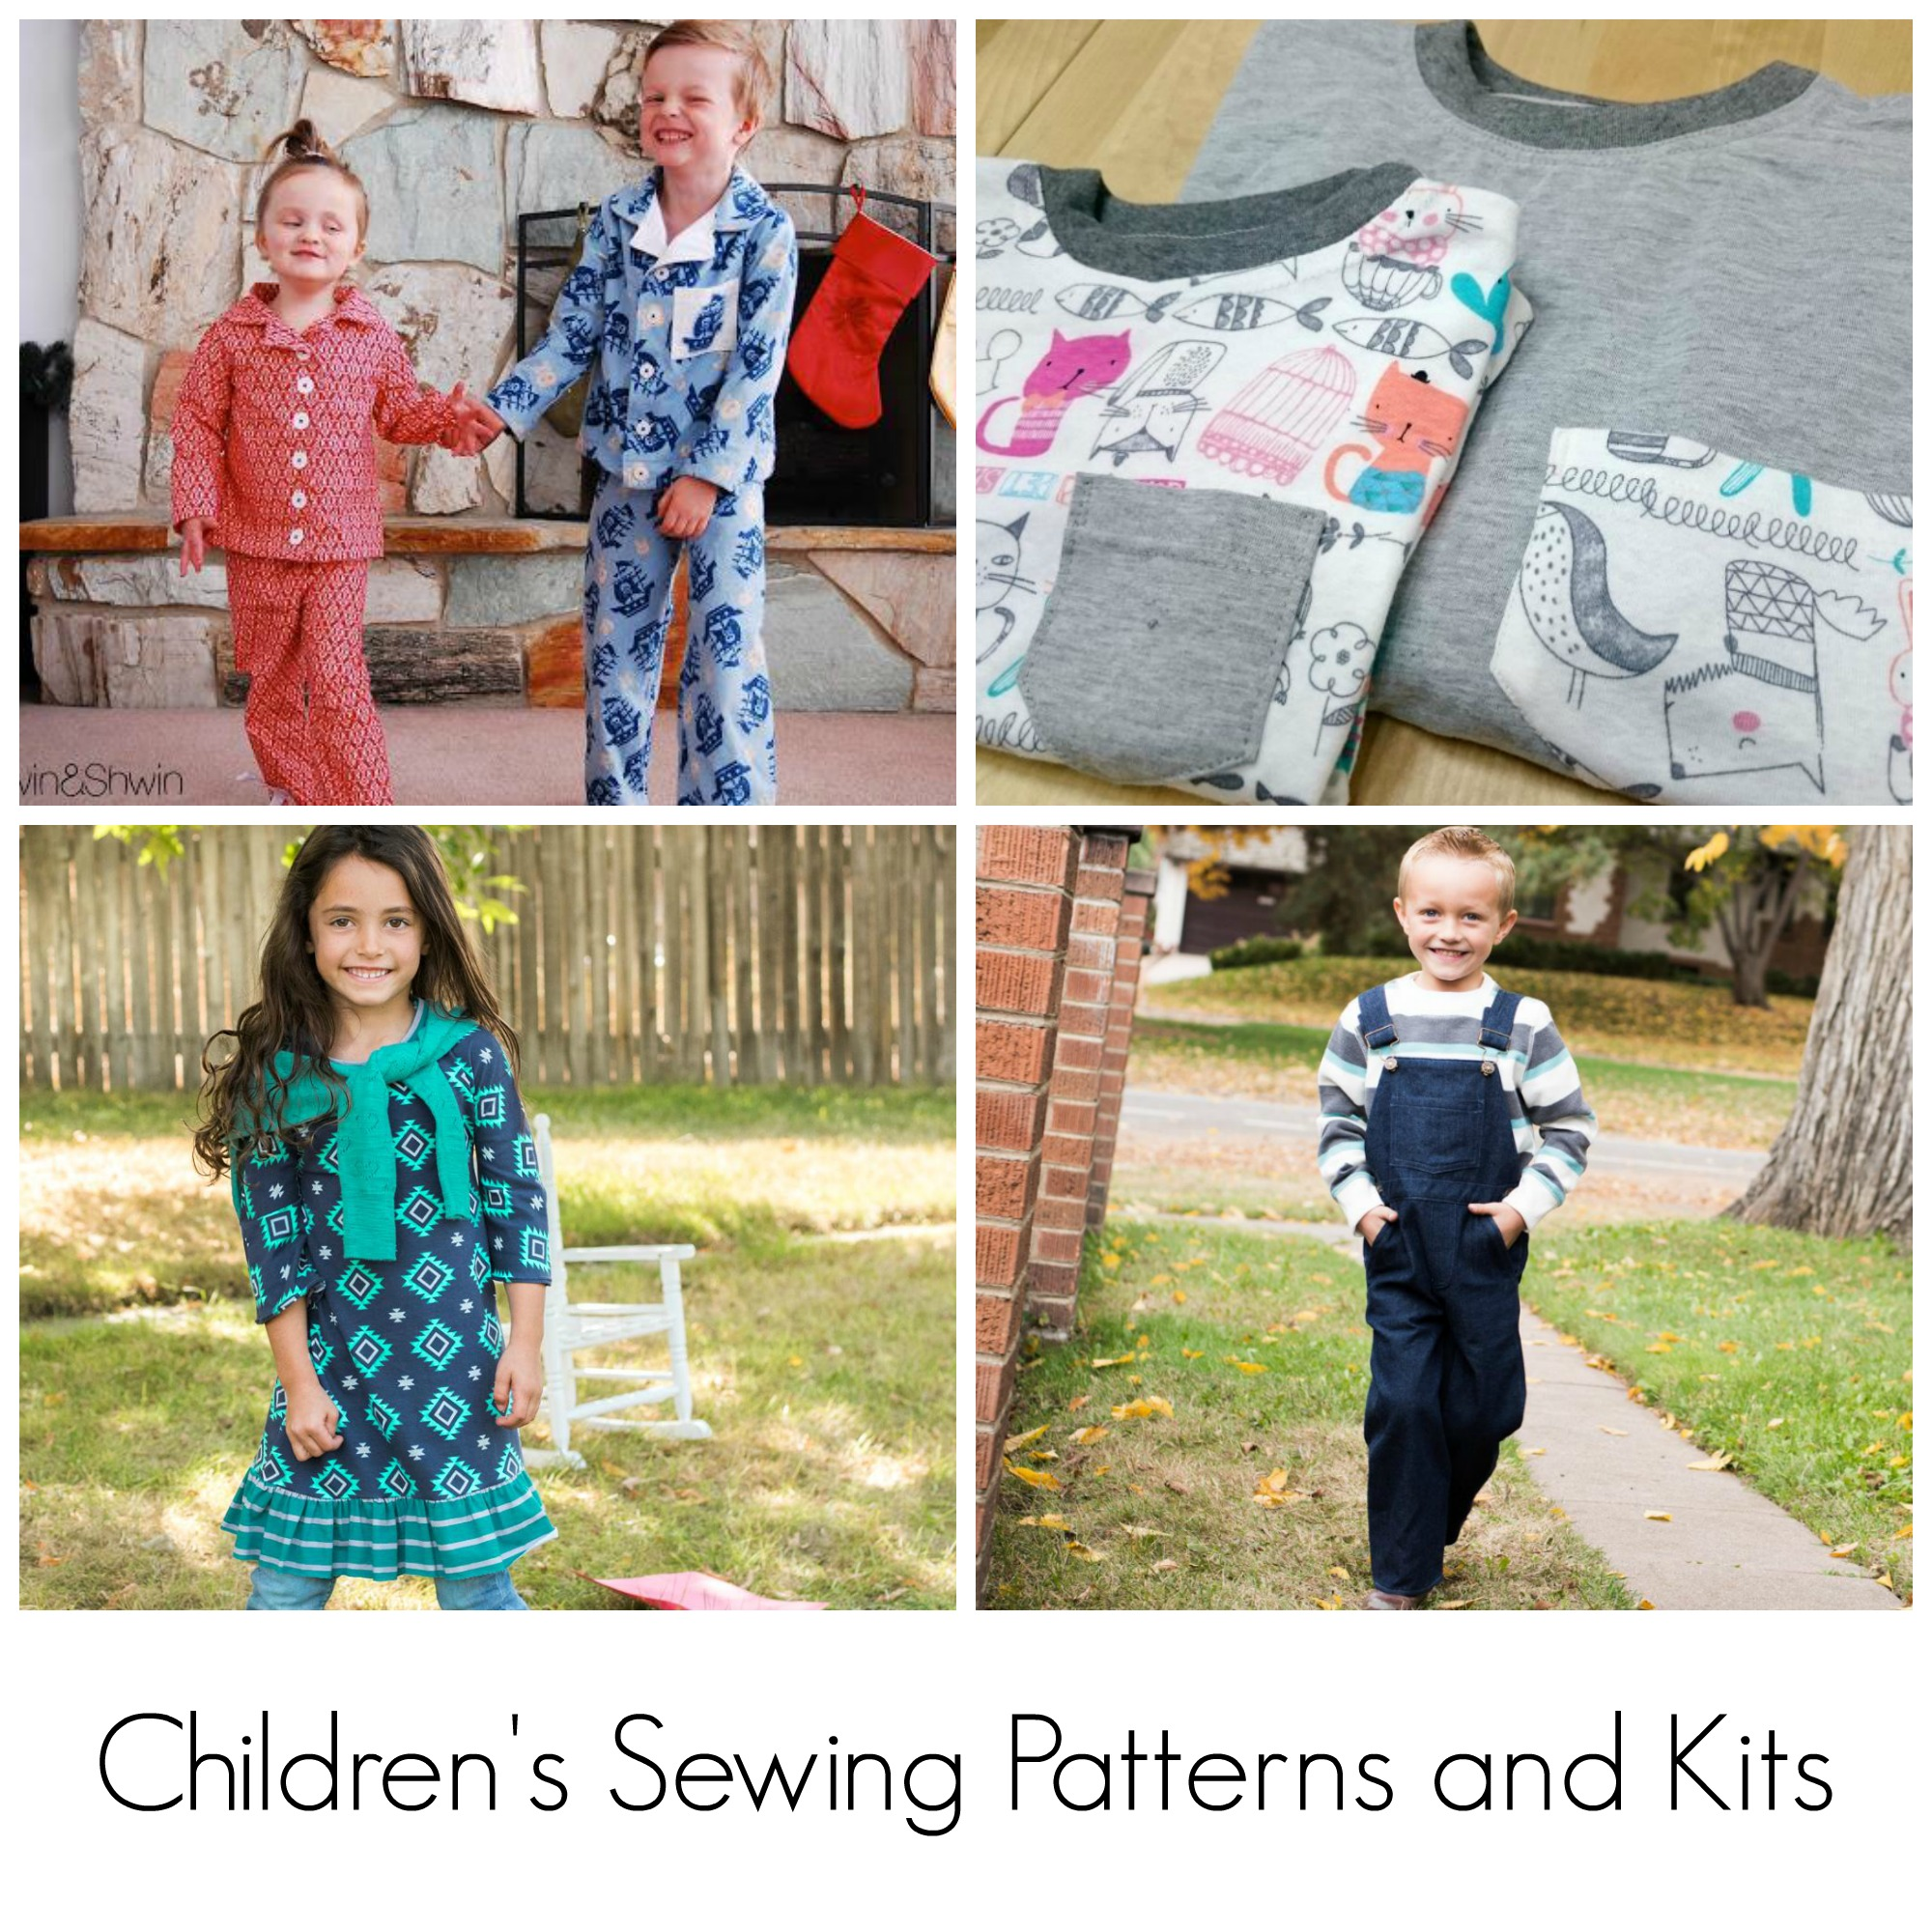 Children's Sewing Patterns and Kits